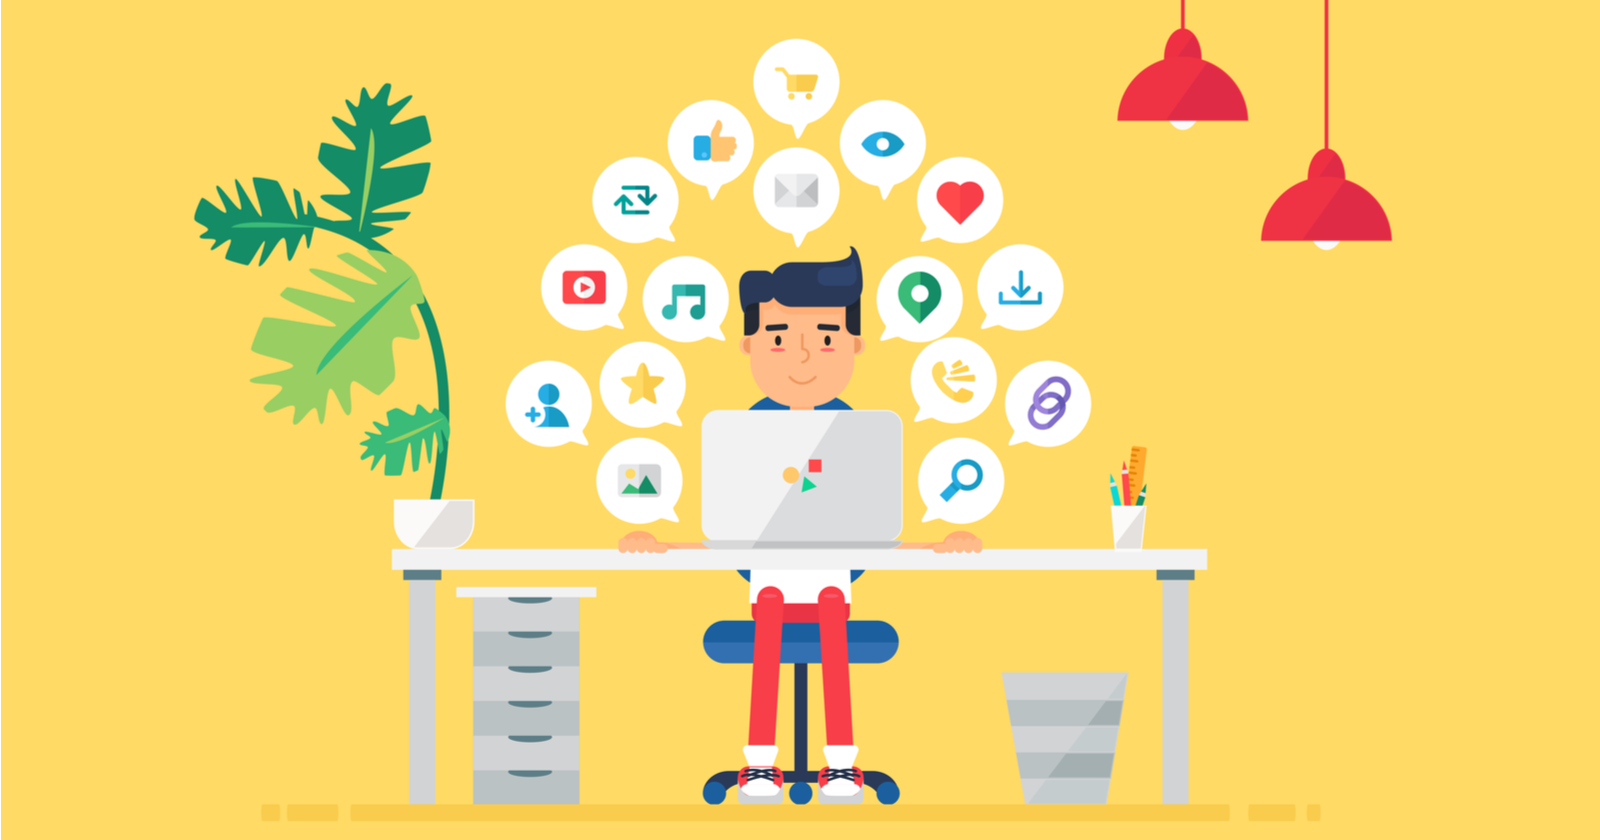 The Top 10 Skills Every Successful Social Media Manager Should Have